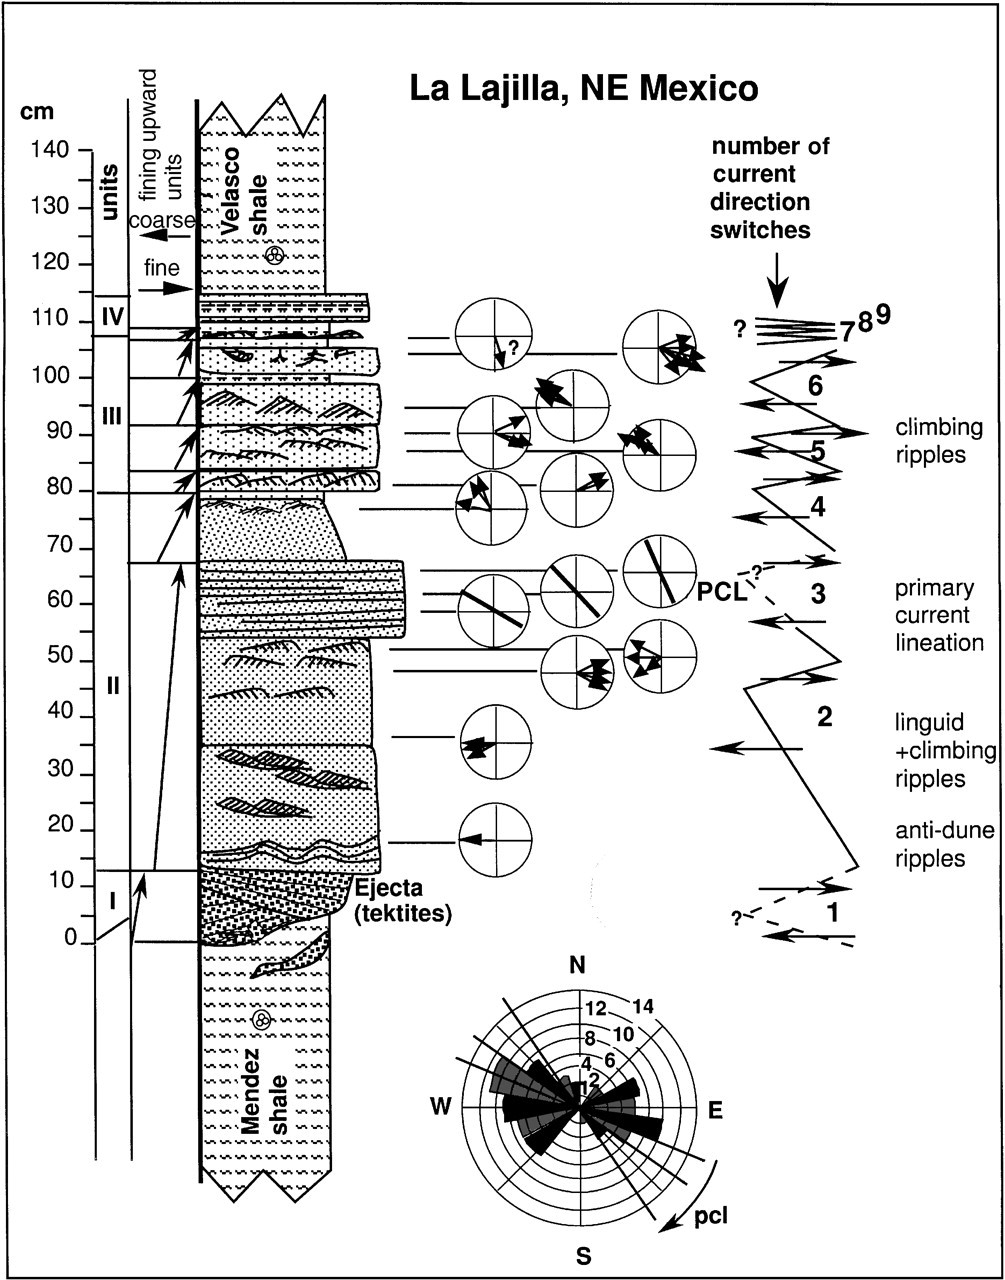 Dawn's Sed Strat Lecture Notes: Chronostratigraphy